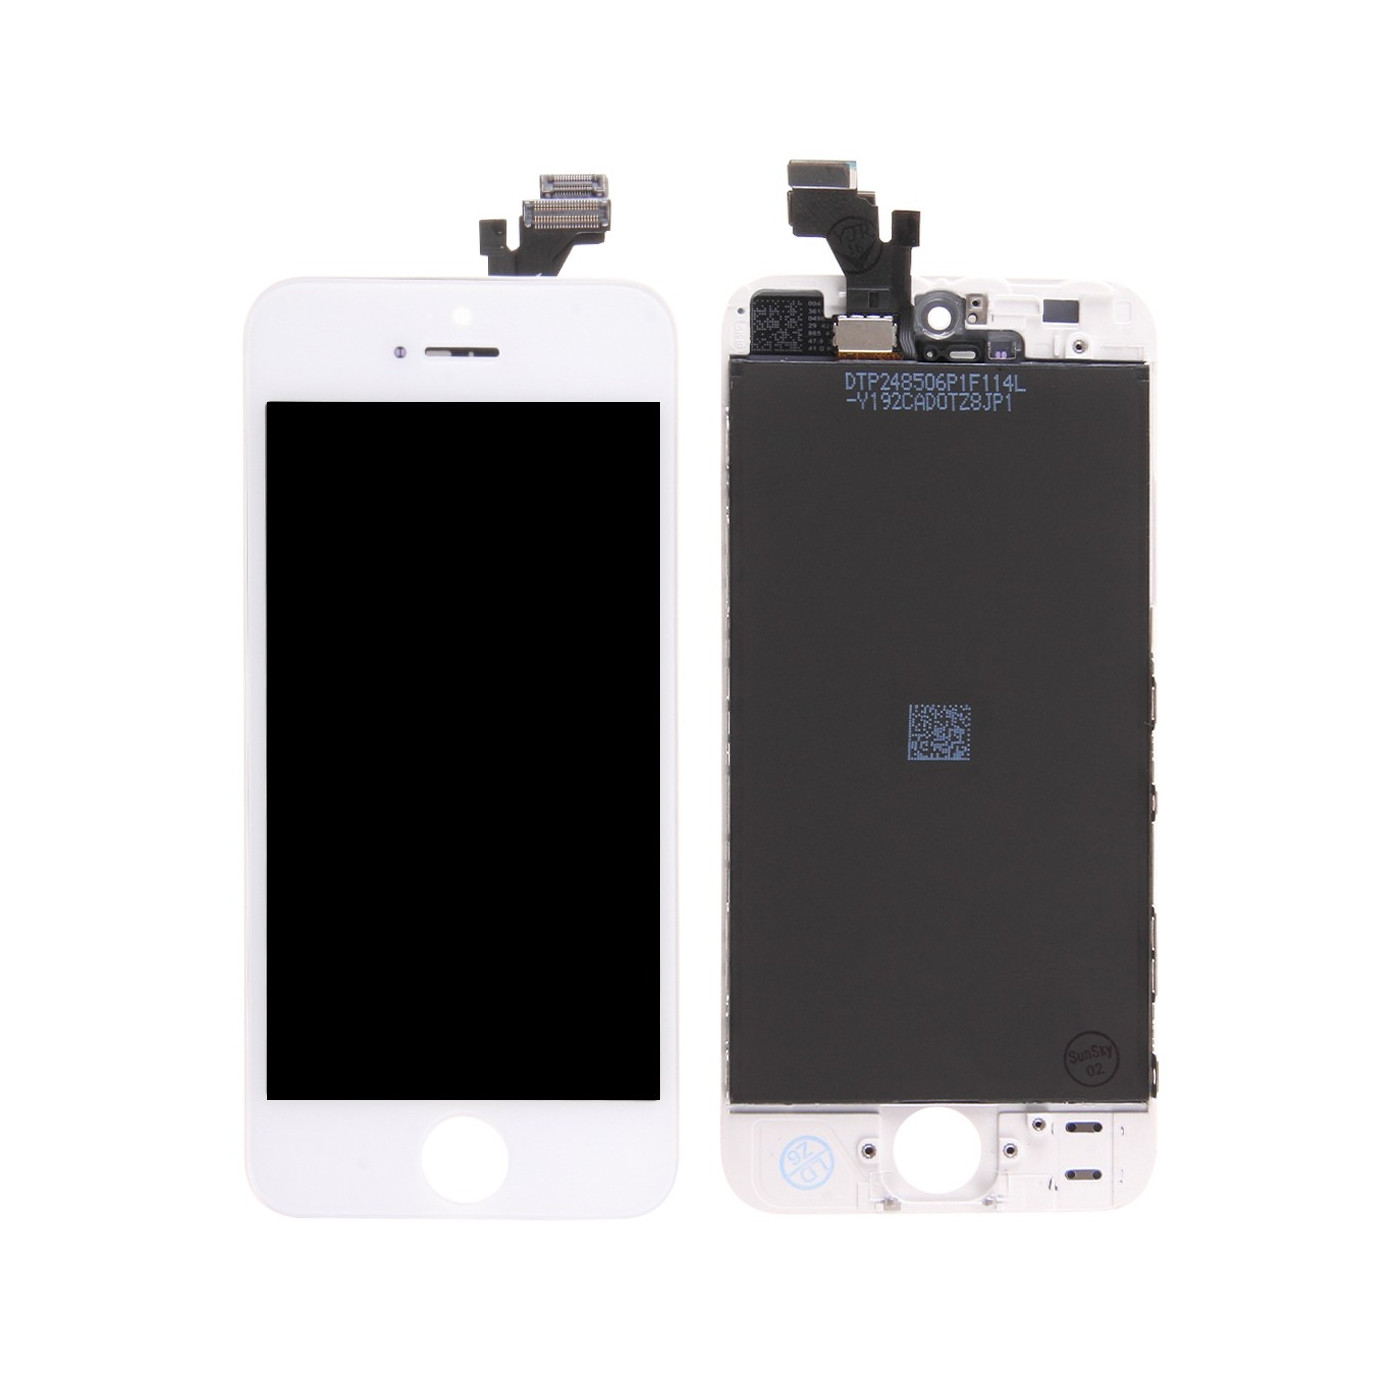 TOUCH GLASS LCD DISPLAY for Apple iPhone 5 WHITE TIANMA ORIGINAL SCREEN